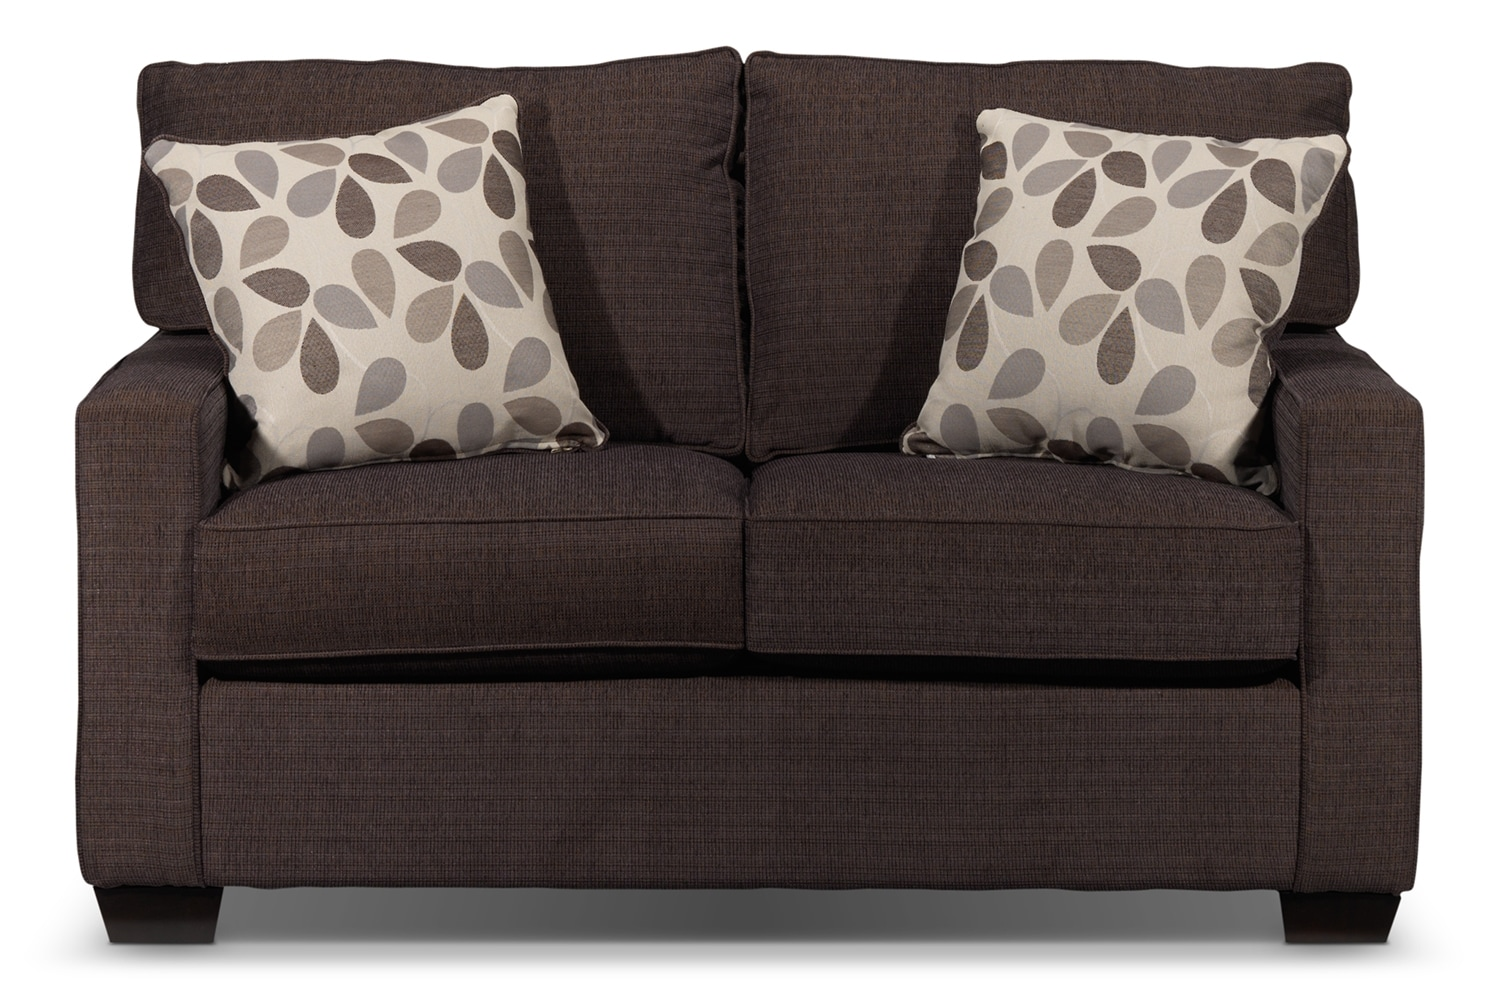 Perkin Loveseat - Deep Brown